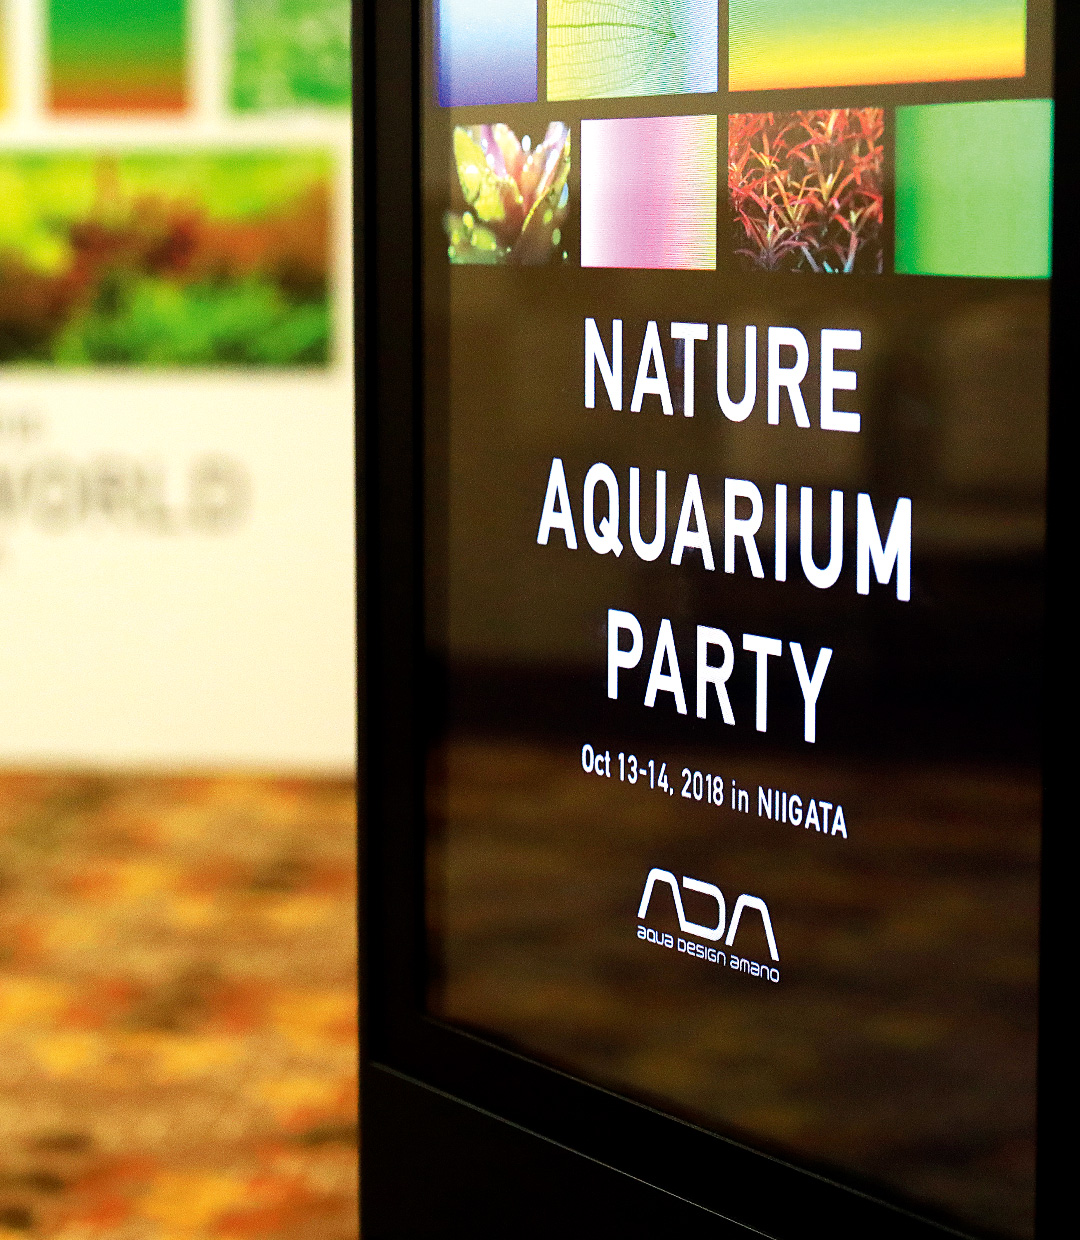 Looking back at the Nature Aquarium Party 2018